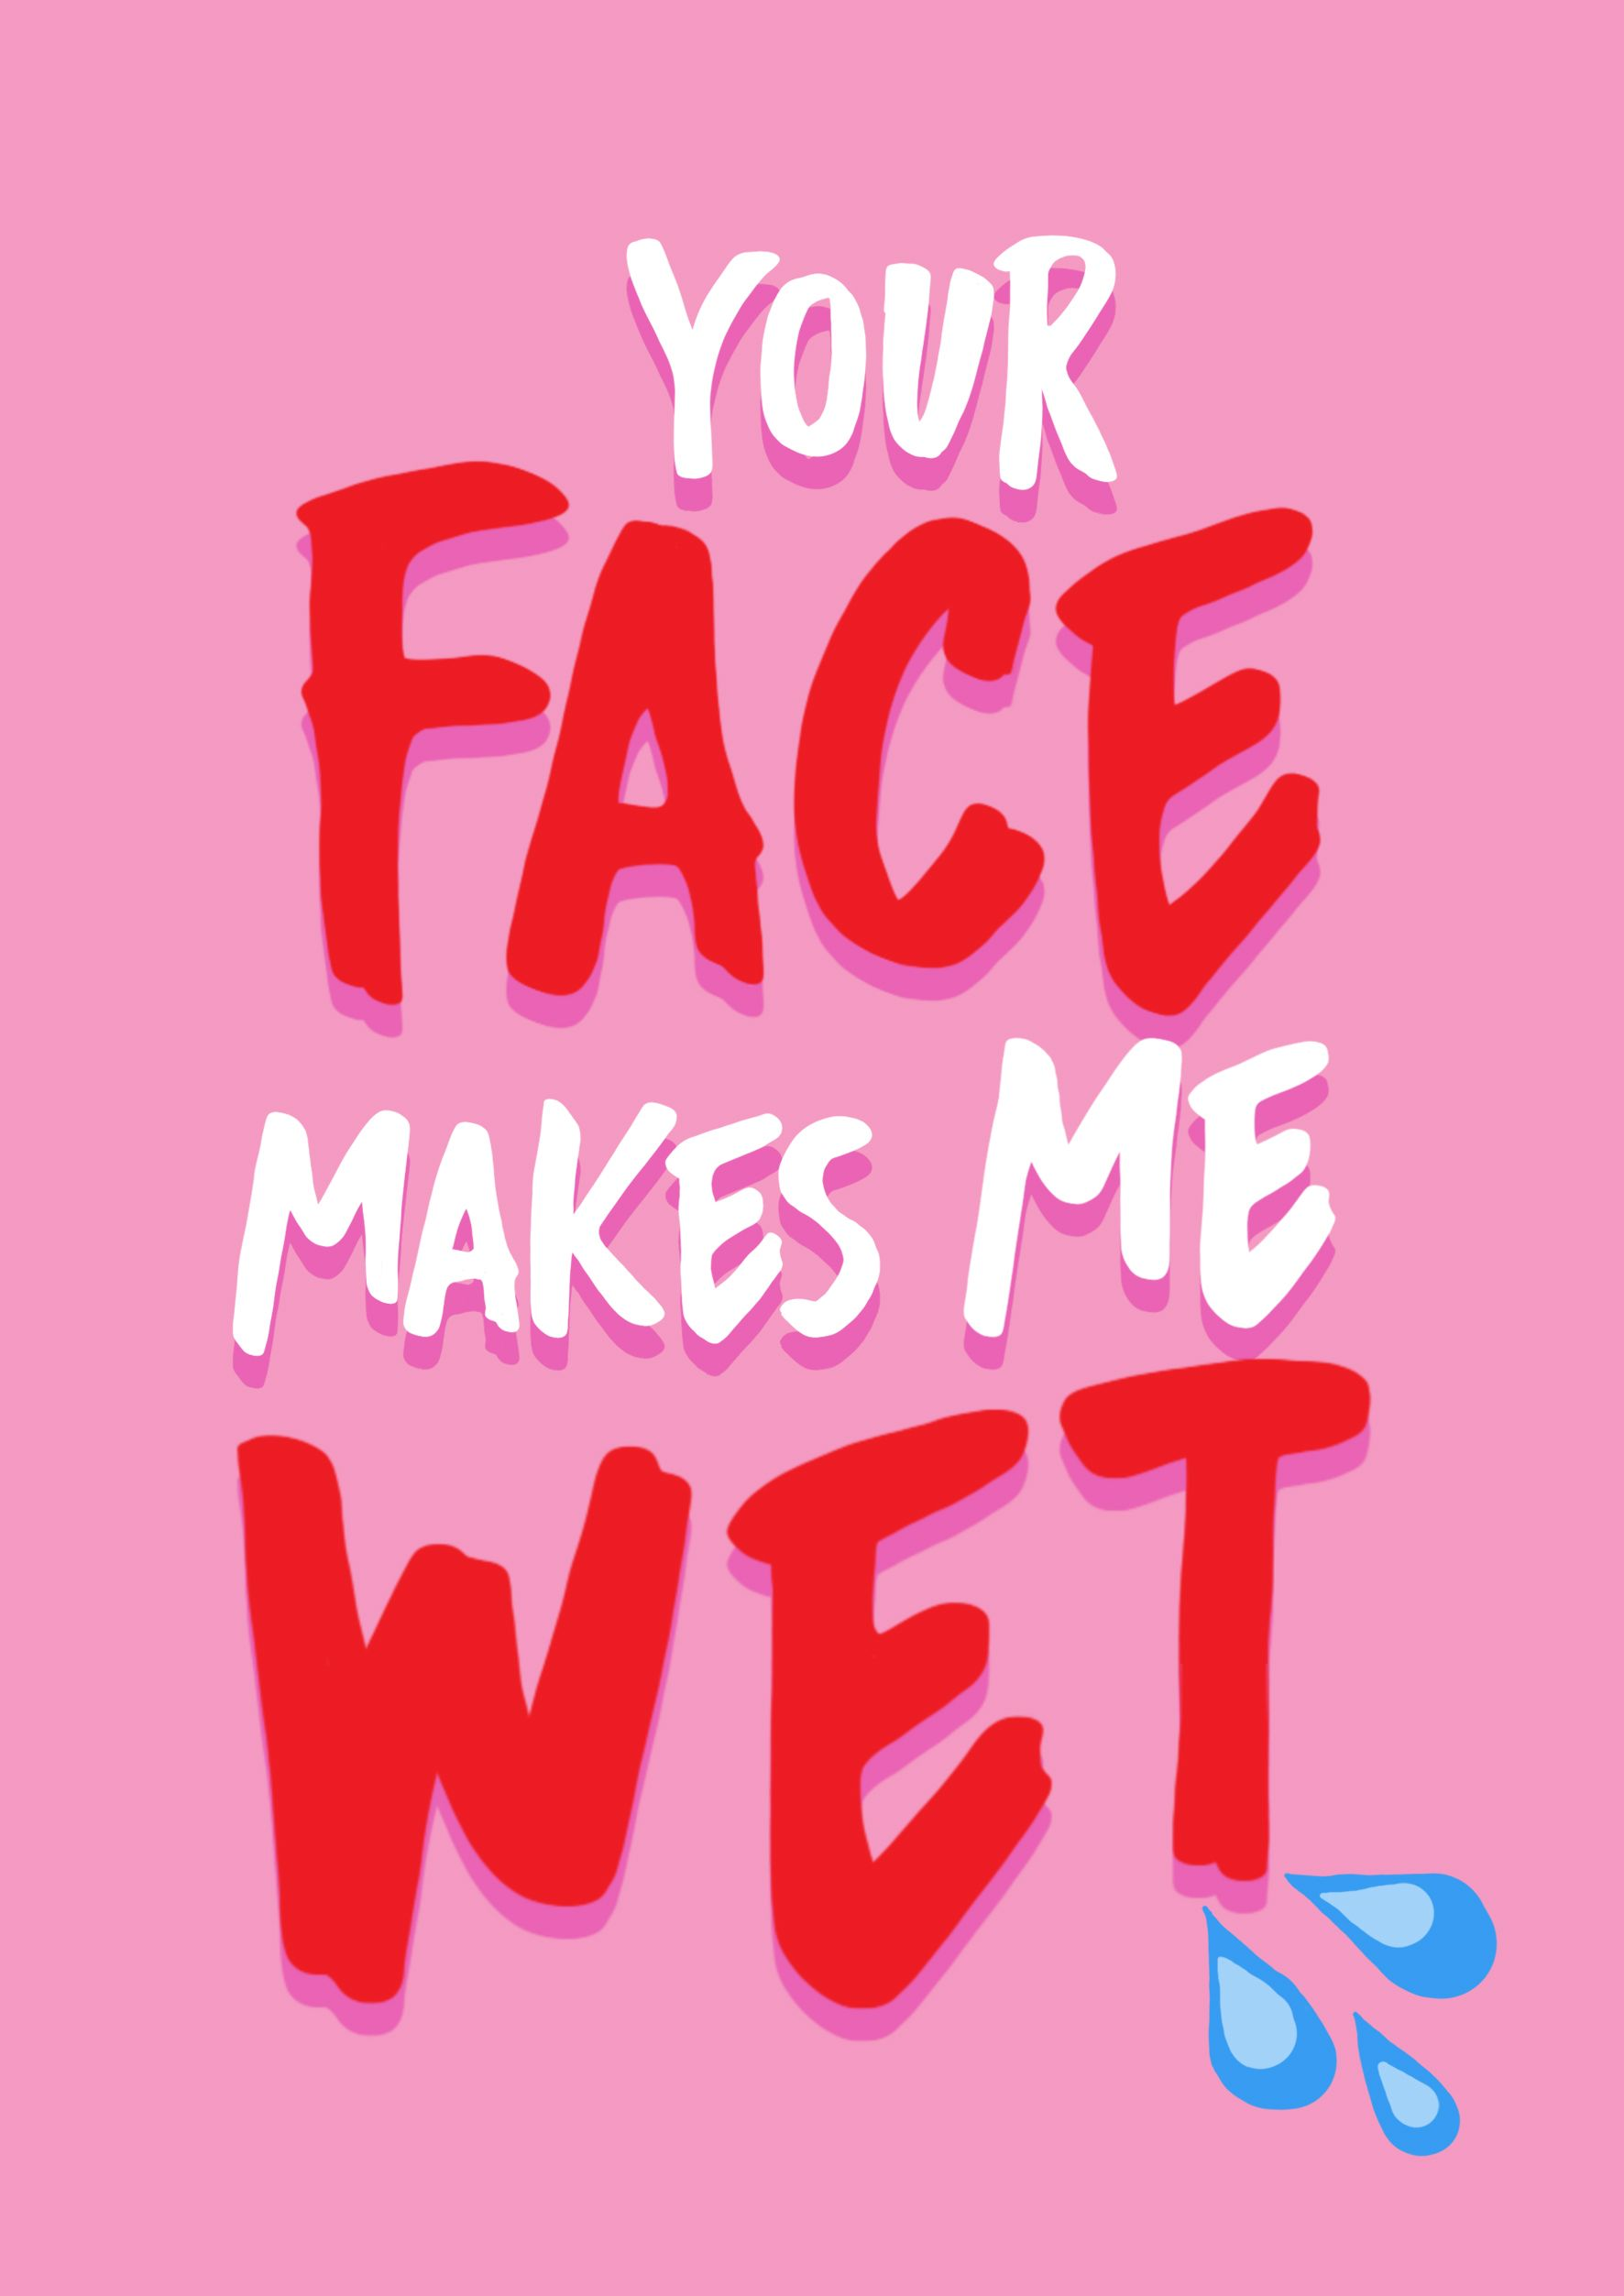 Funny Valentines Card Naughty Valentine Boyfriend Card Friends With Benefits Your Face Makes Me Wet In 2020 Naughty Valentines Funniest Valentines Cards Cards For Boyfriend